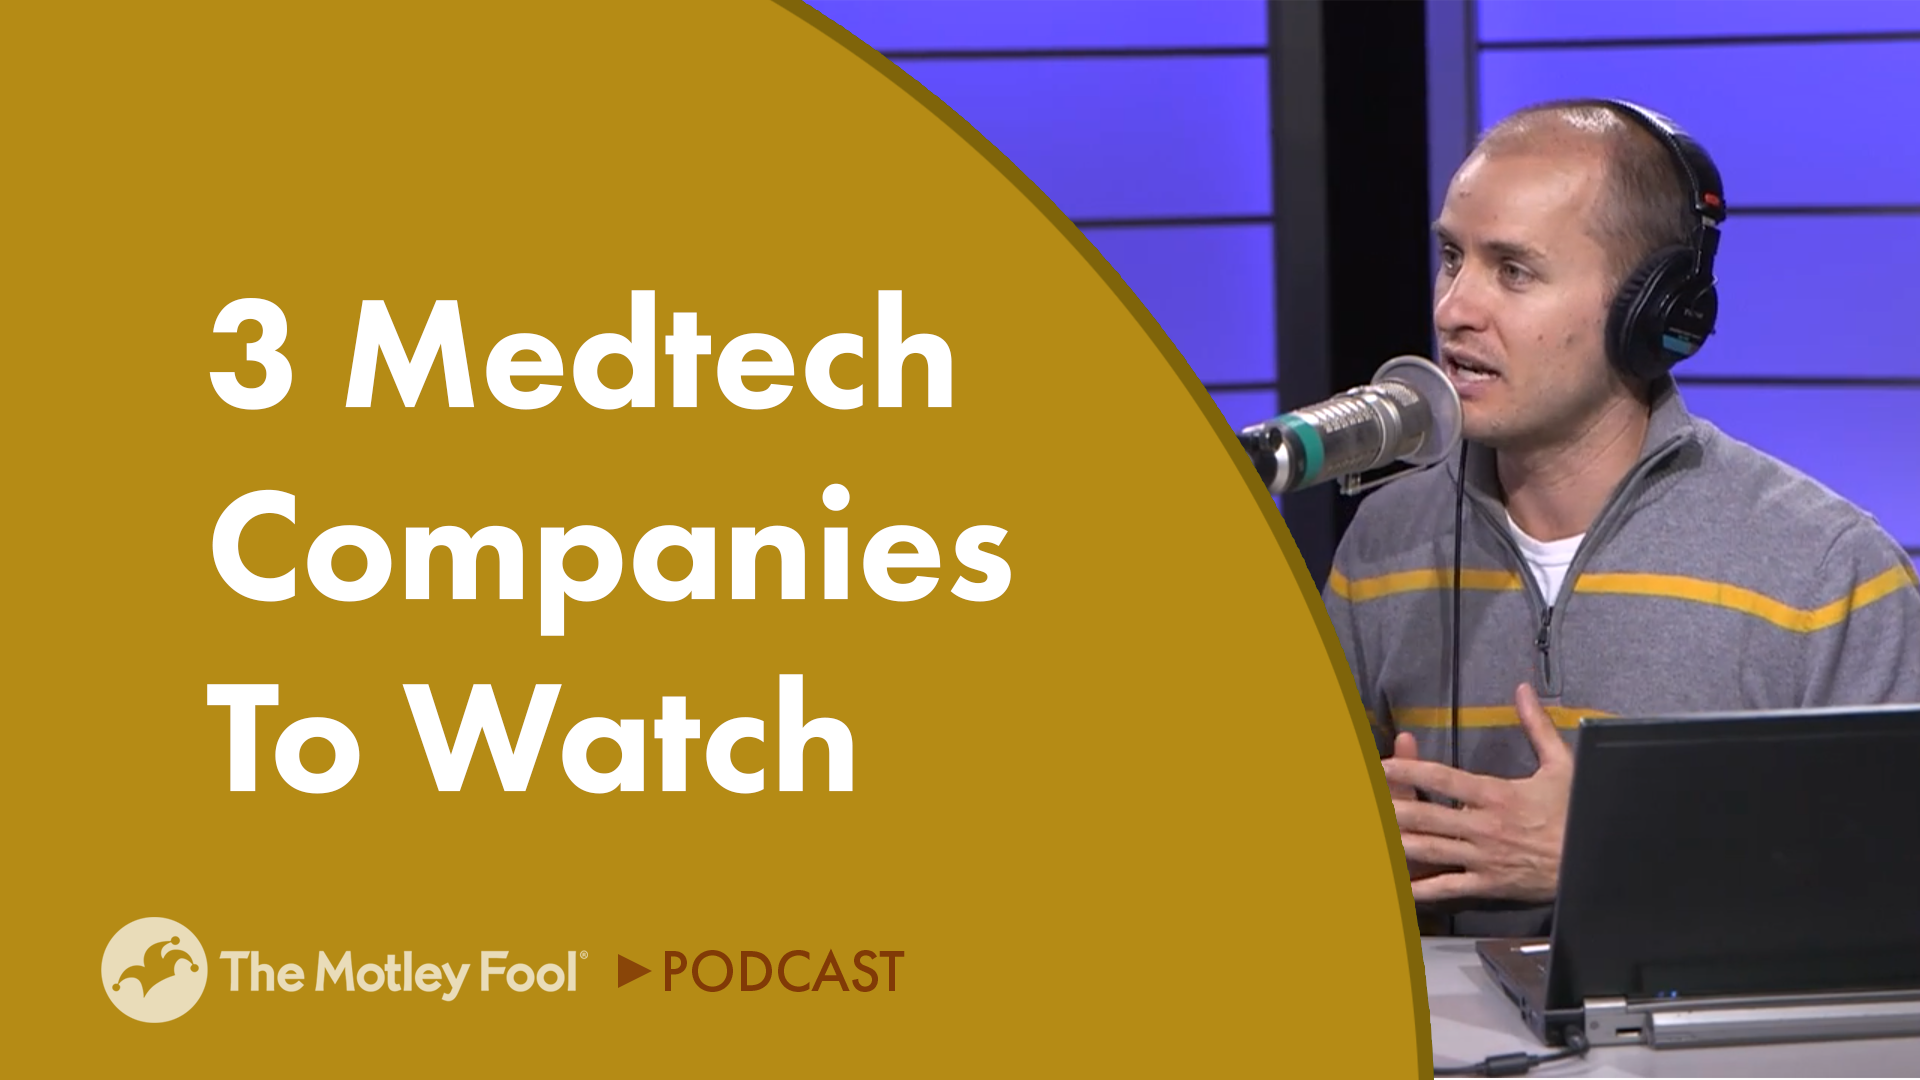 3 Medtech Companies to Watch